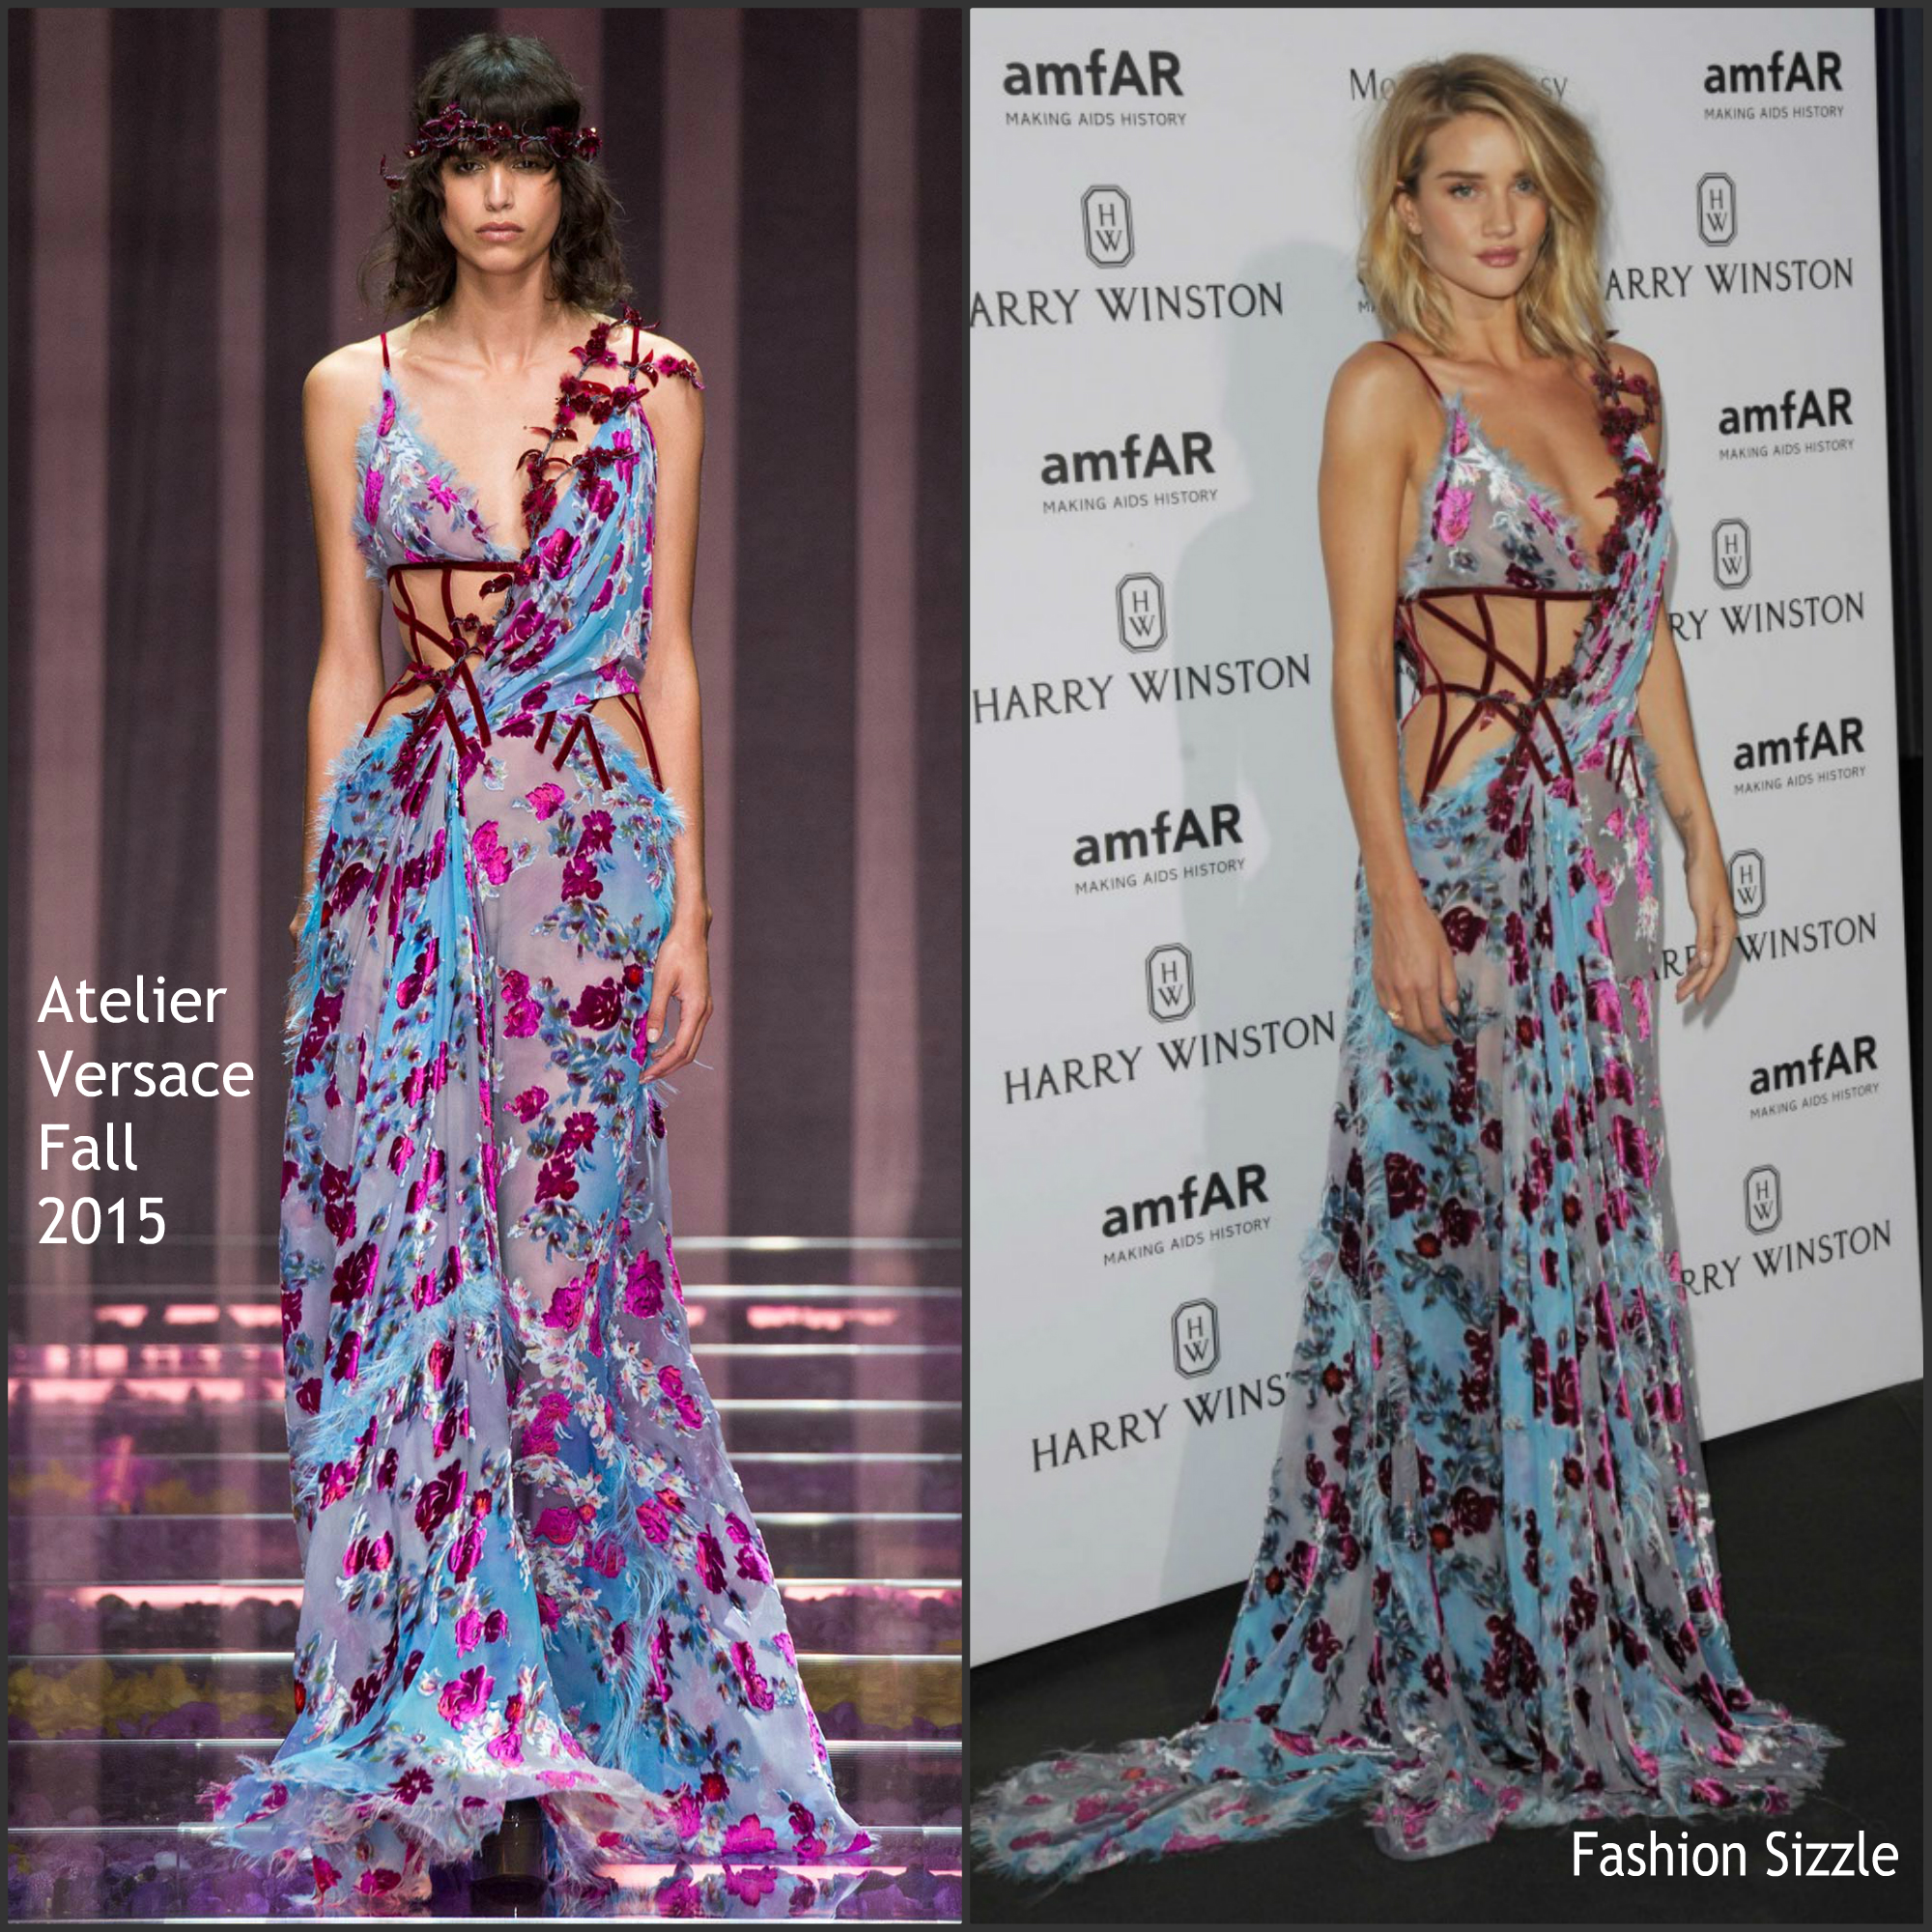 rosie-huntington-whiteley-in-atelier-versace-amfar-paris